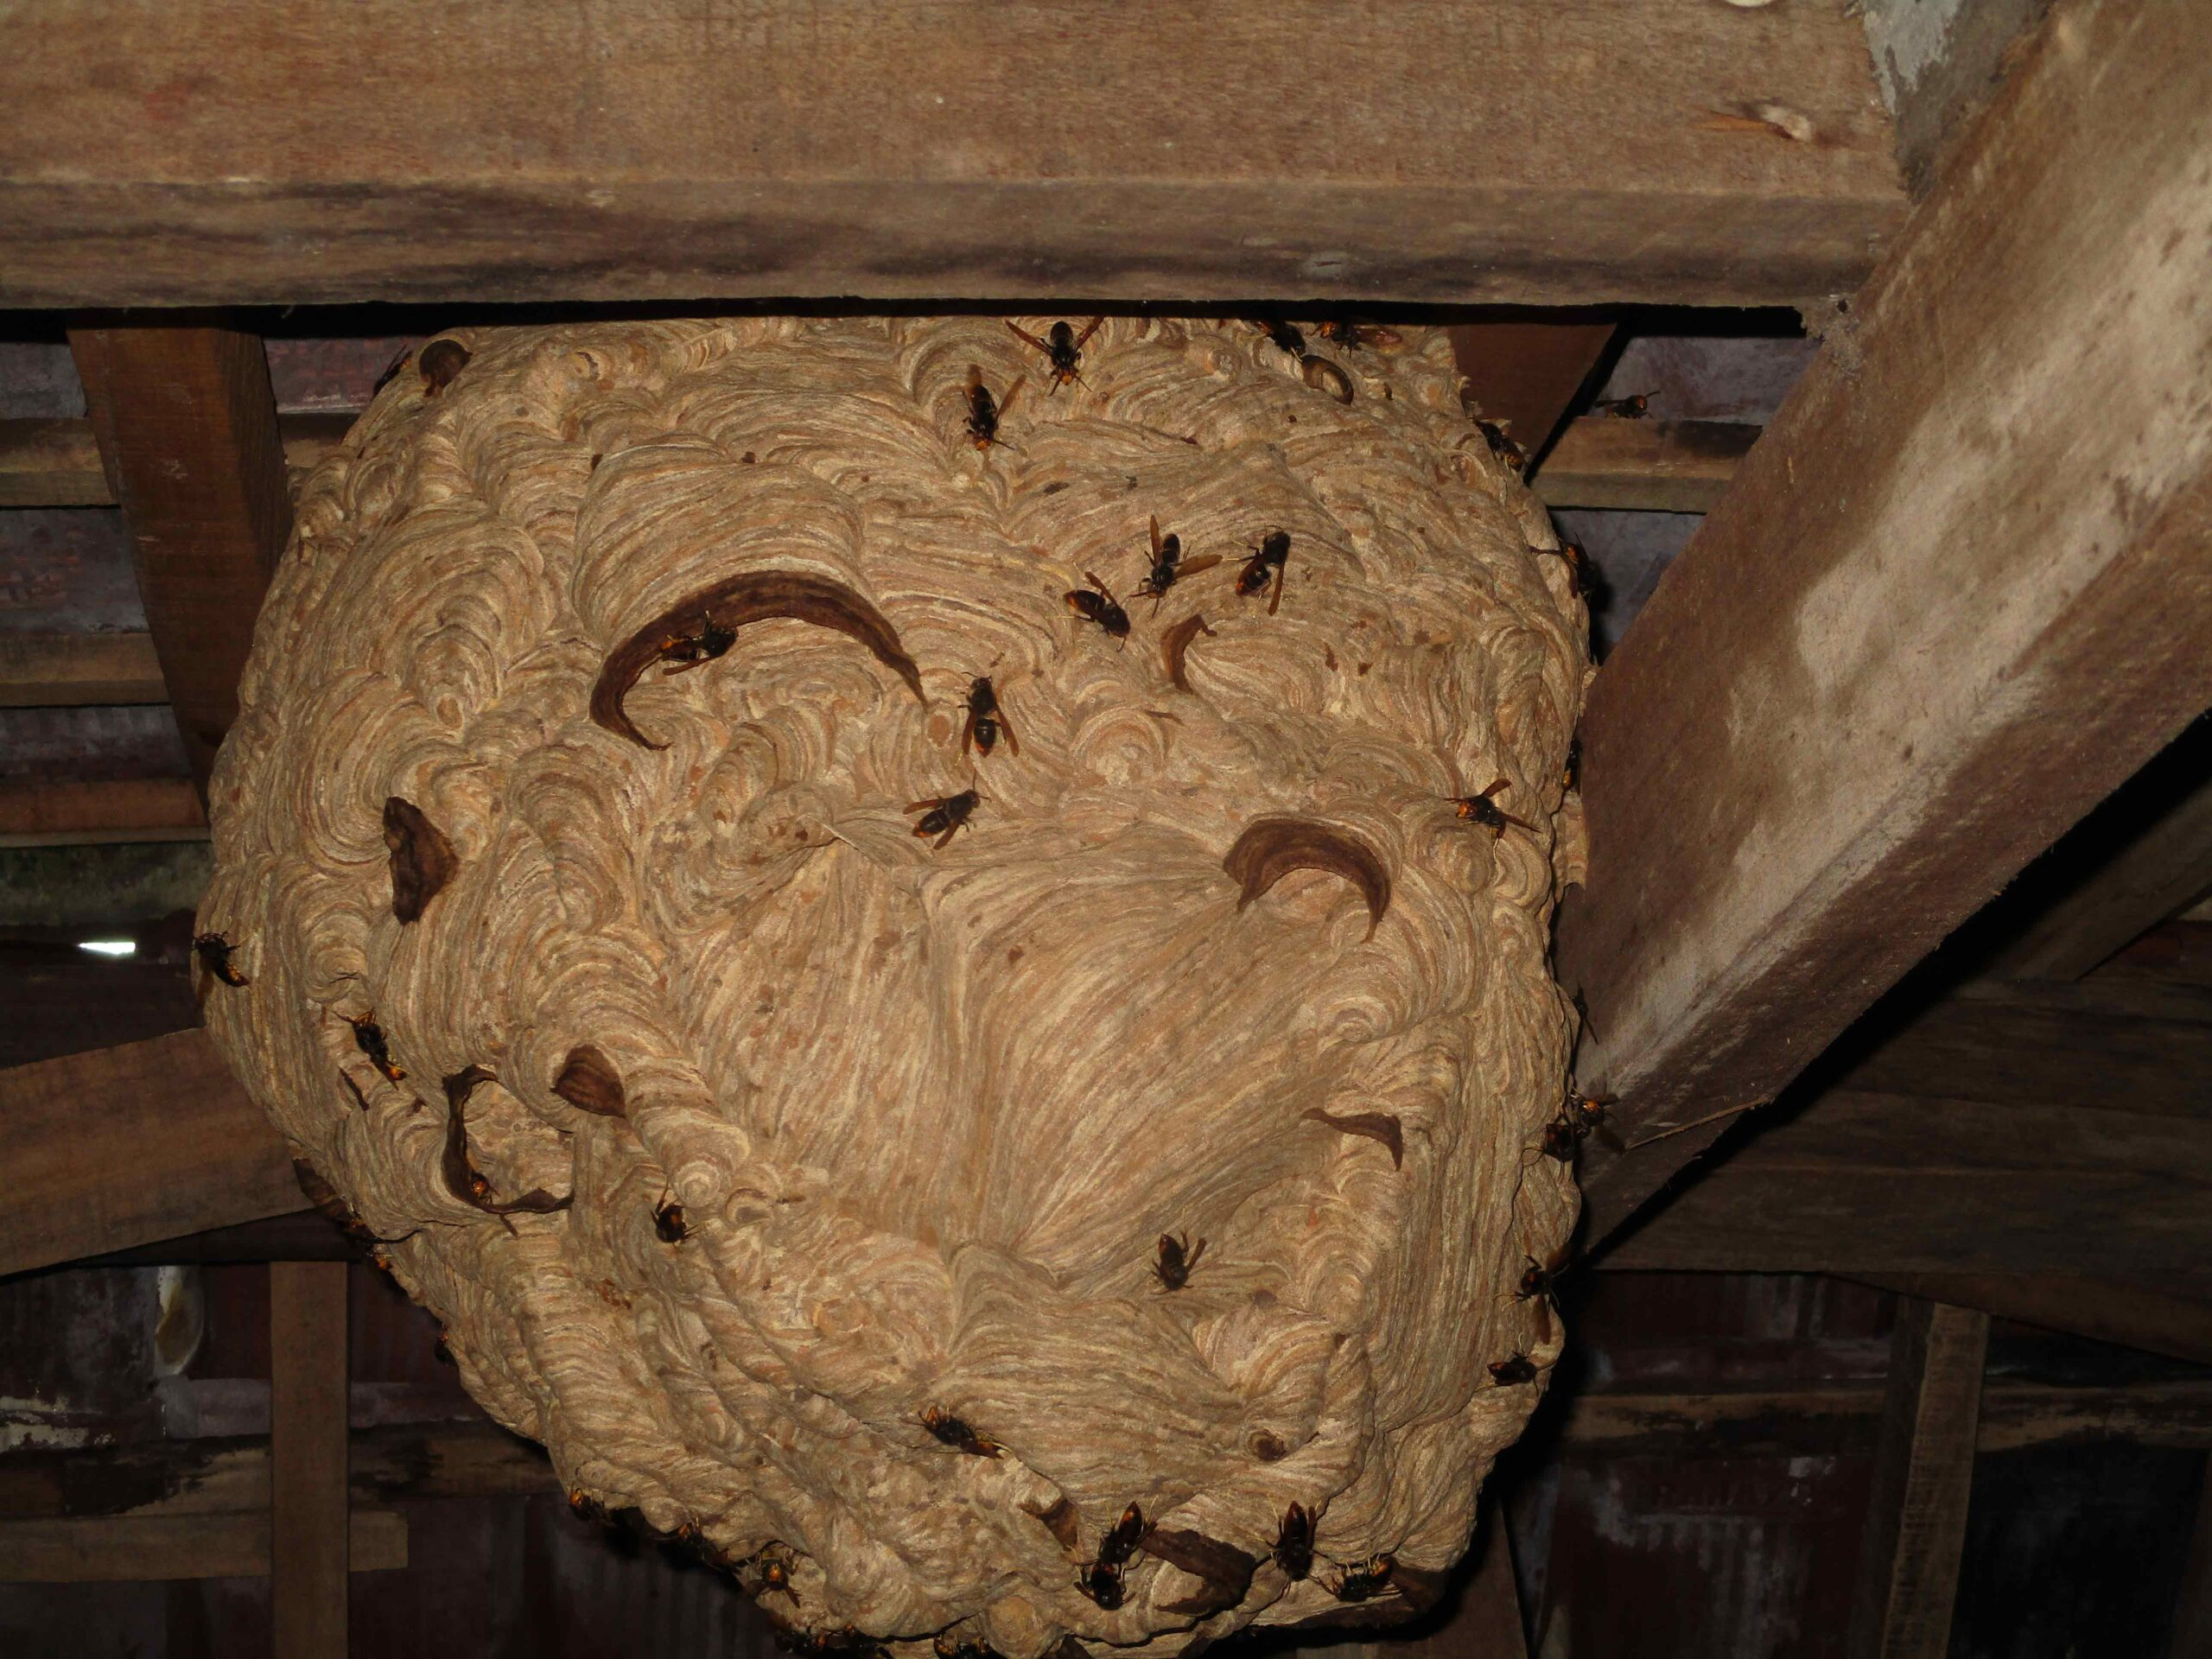 Wasp nest on ceiling of house